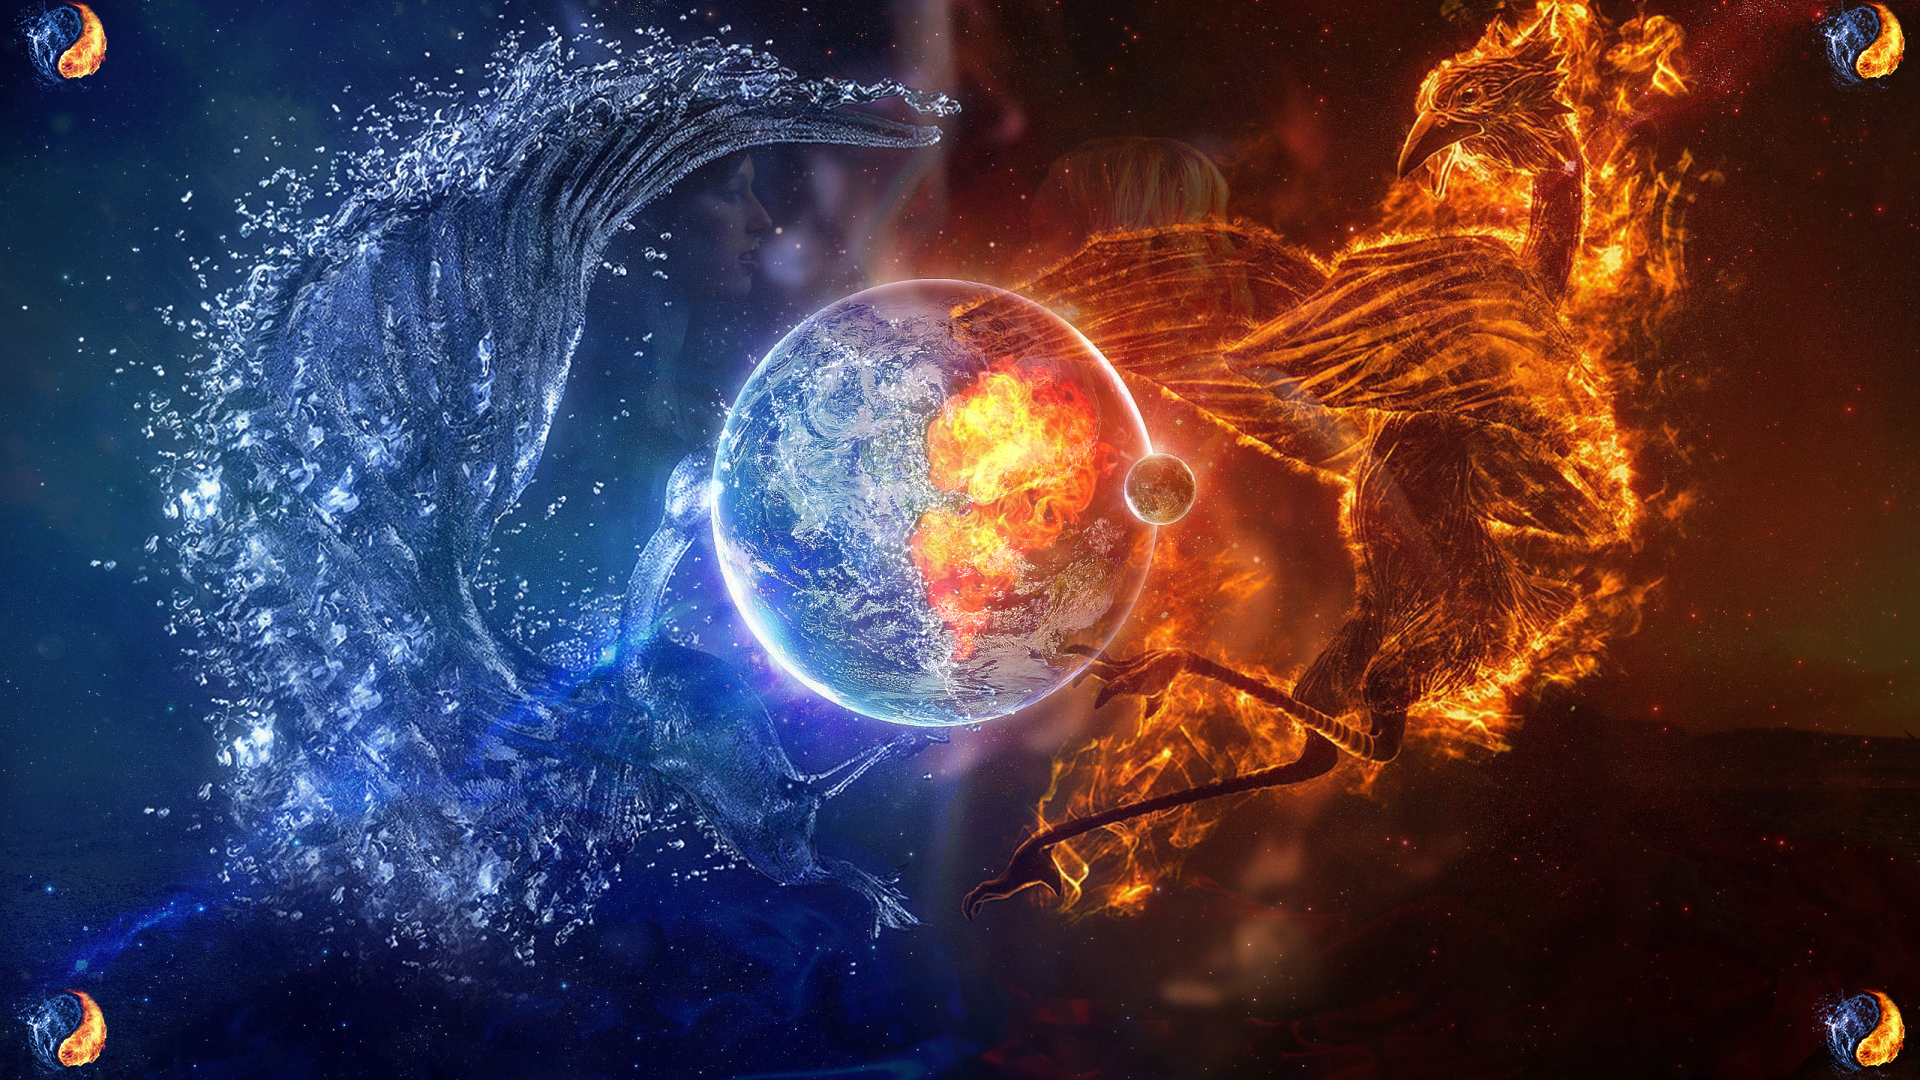 fire and ice fire and ice by dj1001 on deviantART